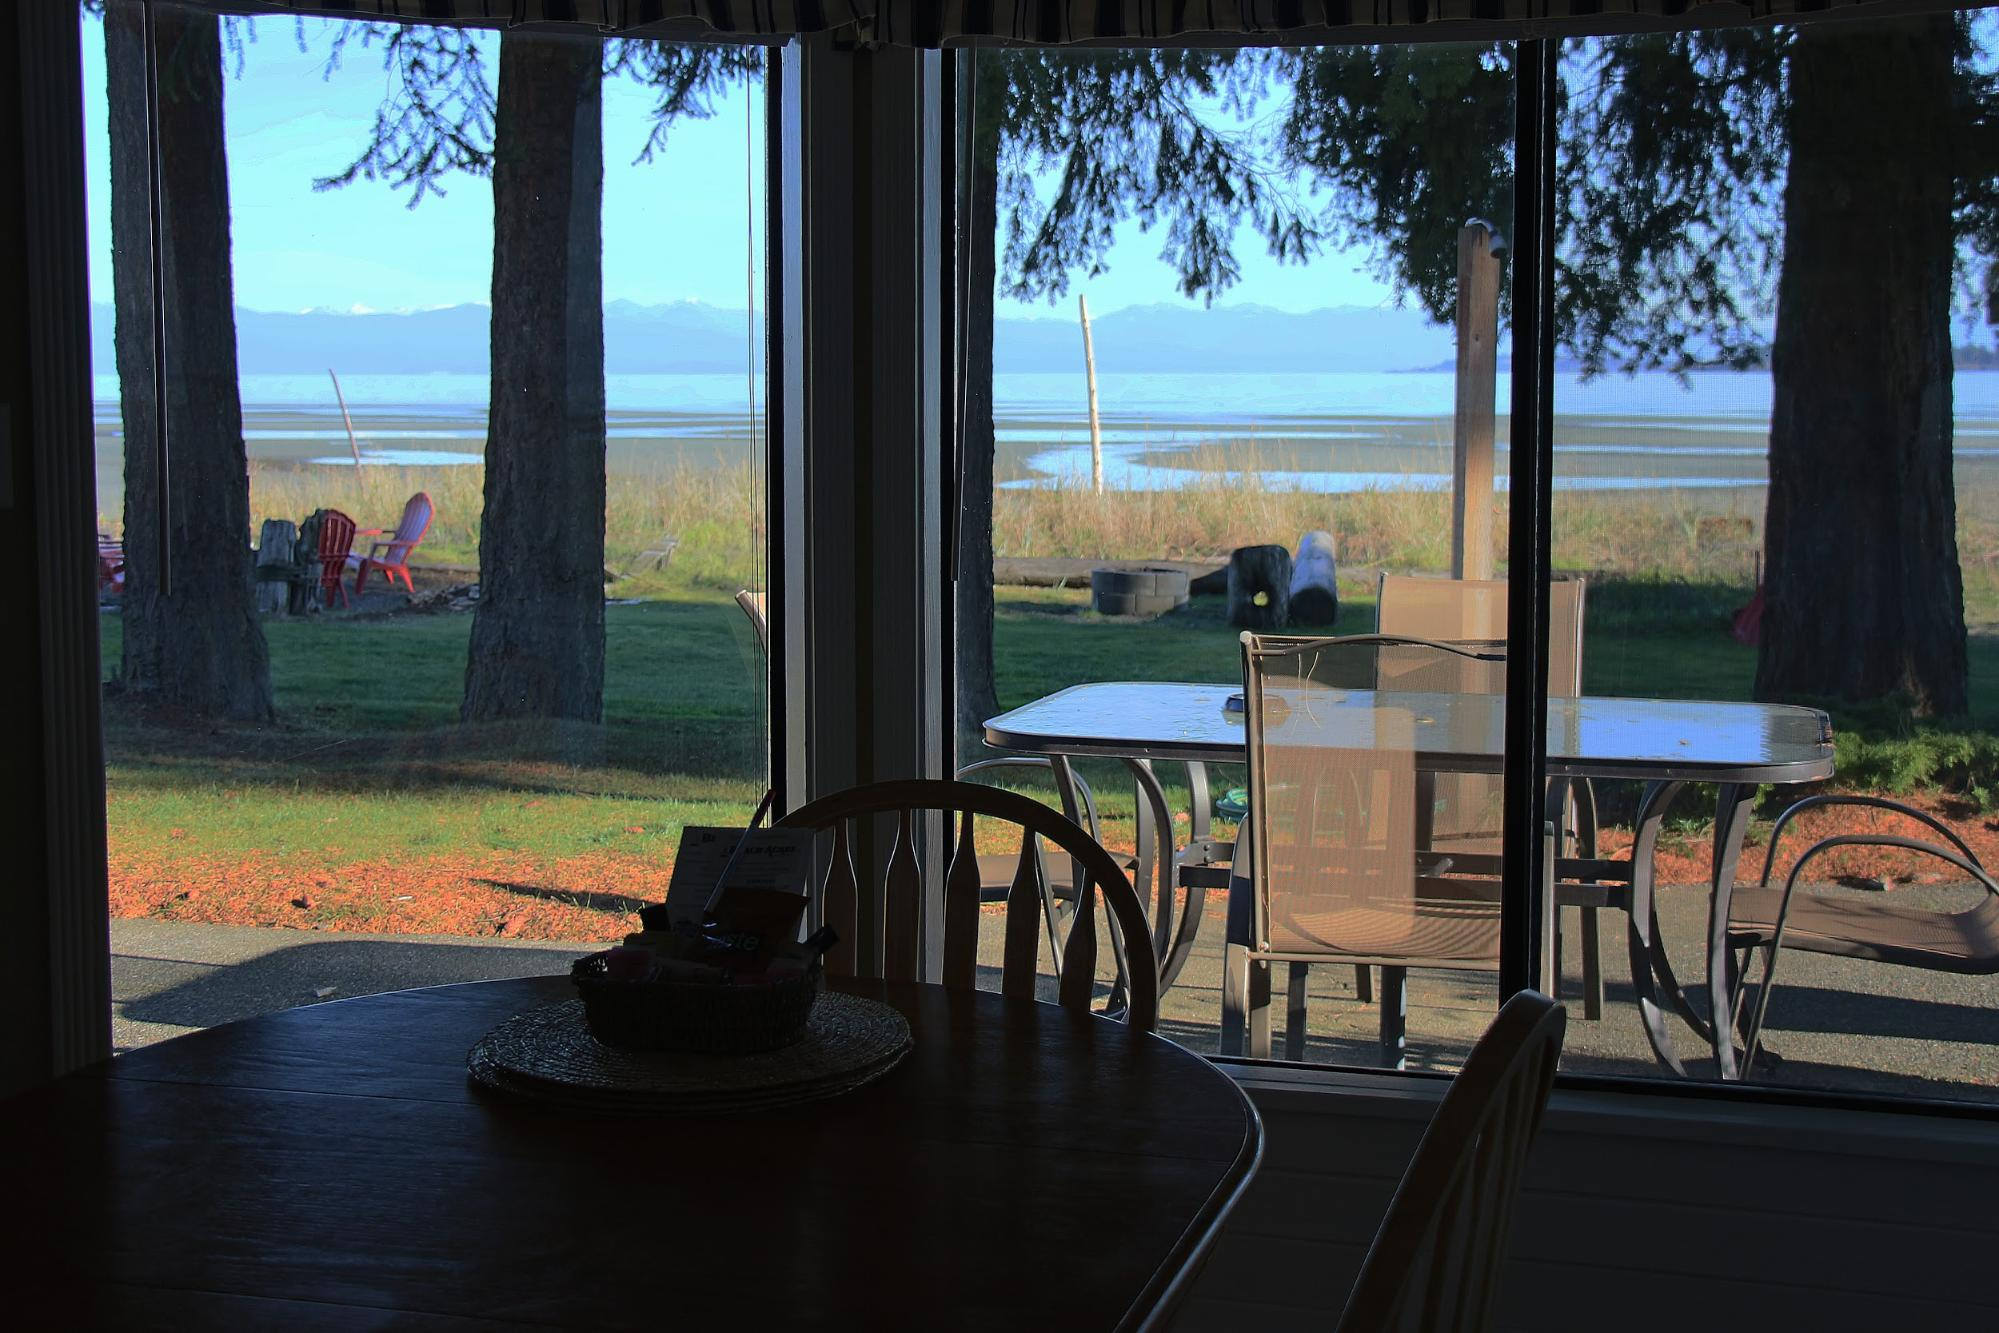 The view from the window of a beach-front accommodation looks out over the water.